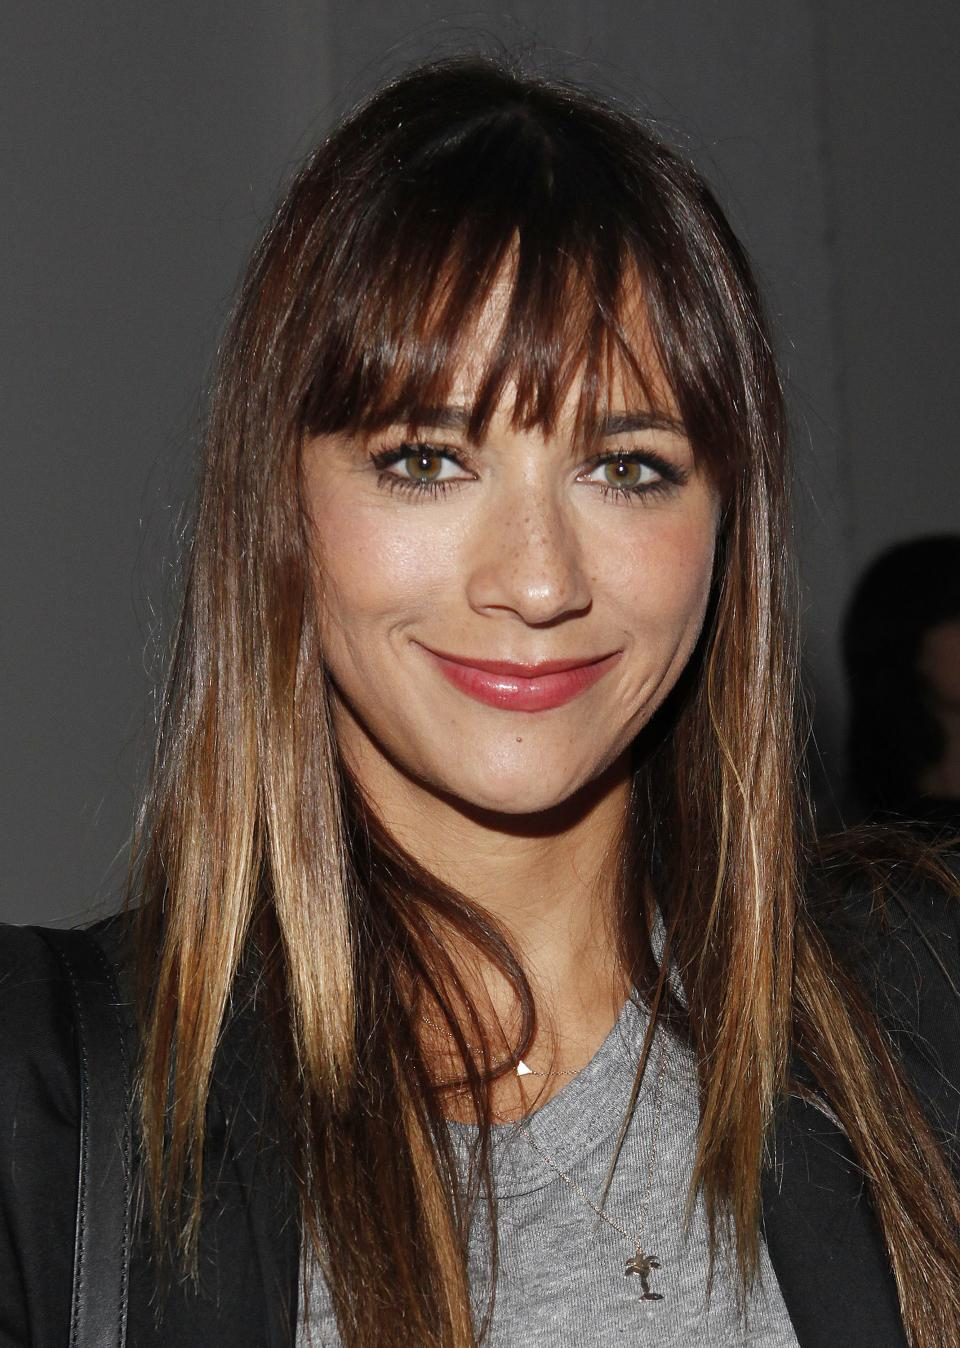 Rashida Jones attends the Rodarte collection on Tuesday, Sept. 10, 2012, during Mercedes-Benz Fashion Week in New York. (Photo by Amy Sussman/Invision/AP)